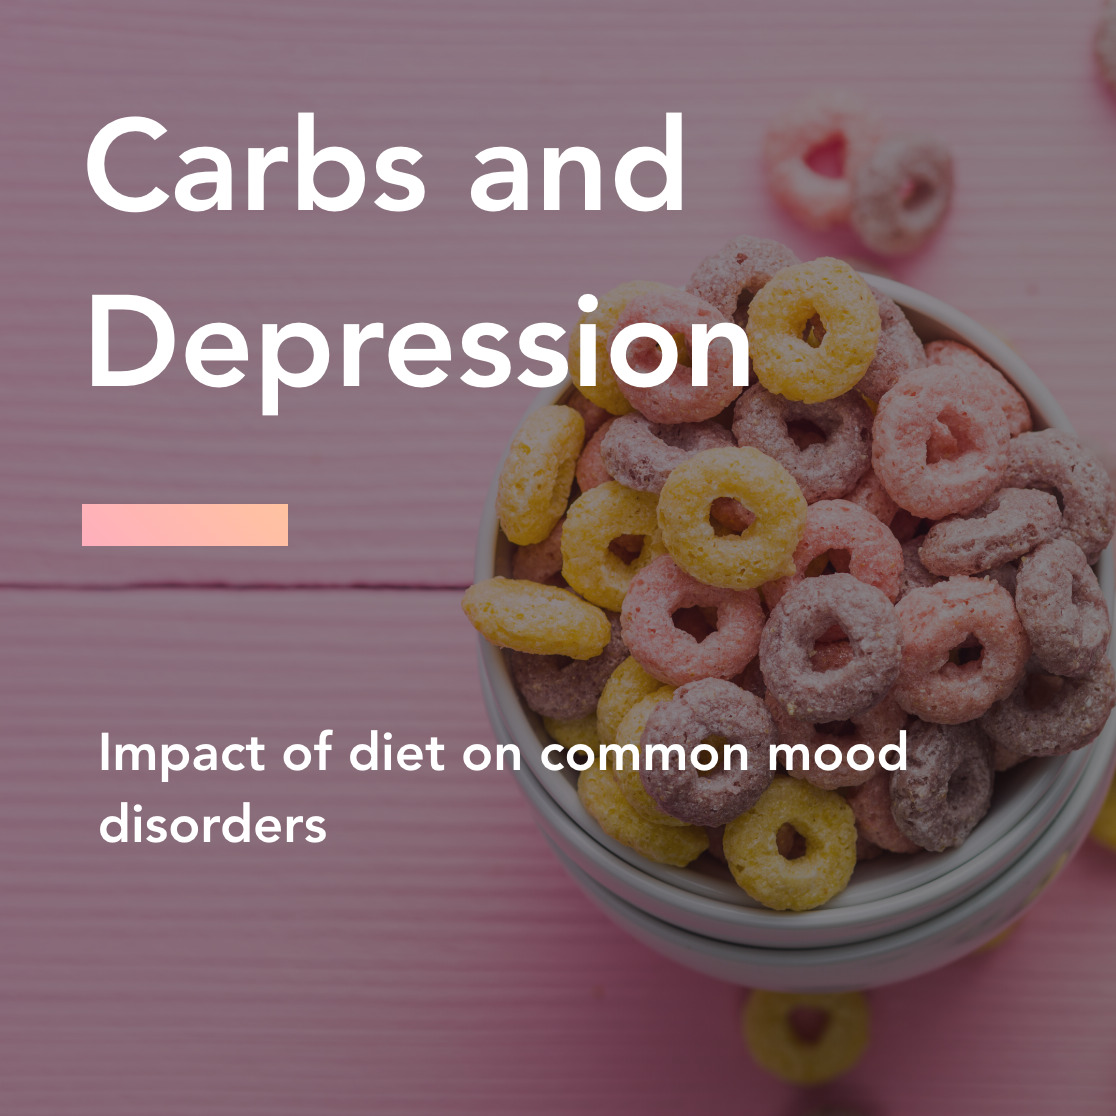 Carbs and depression title